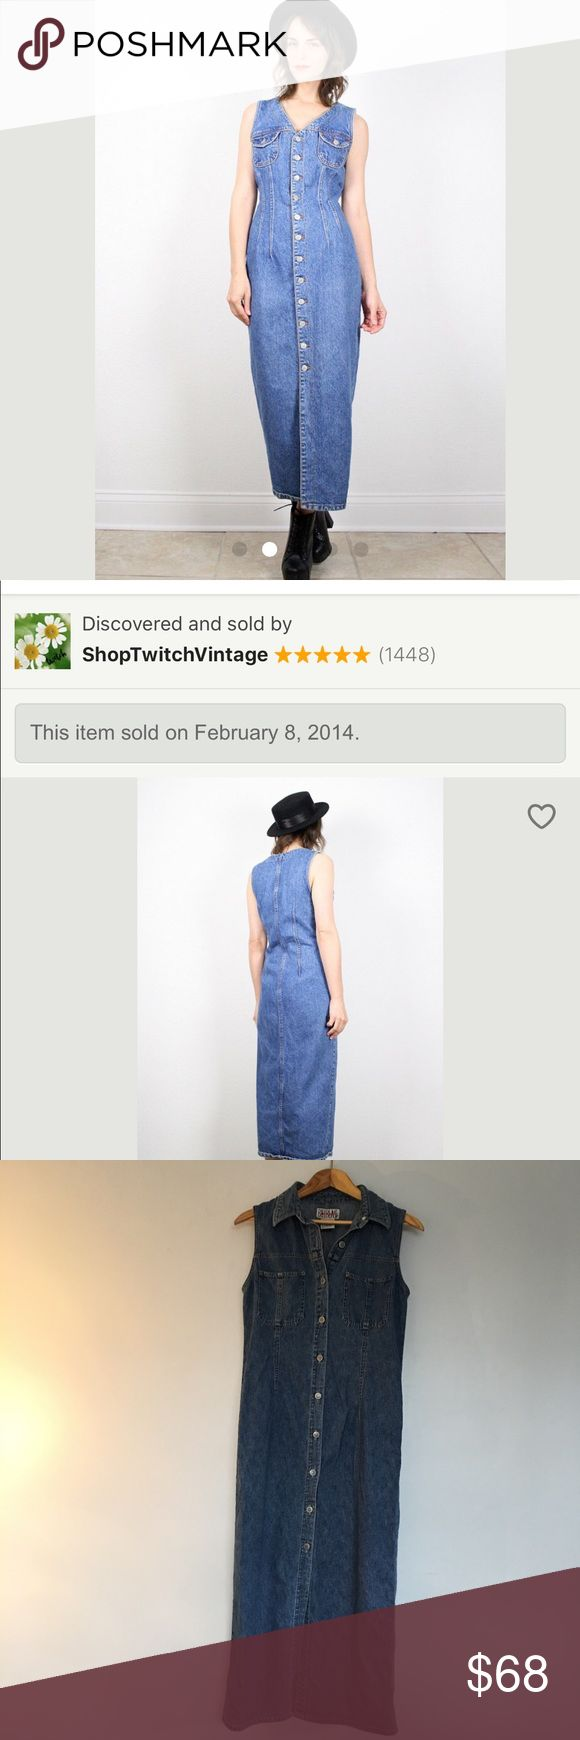 Vintage 90's Bill Blass Button Up Long Denim Dress Vintage 90's Bill Blass Button Up Long Denim Dress. No flaws. Perfect condition.   Approximate Measurements    39 chest  36 Waist 43 Hip 50 Length Bill Blass Dresses Maxi